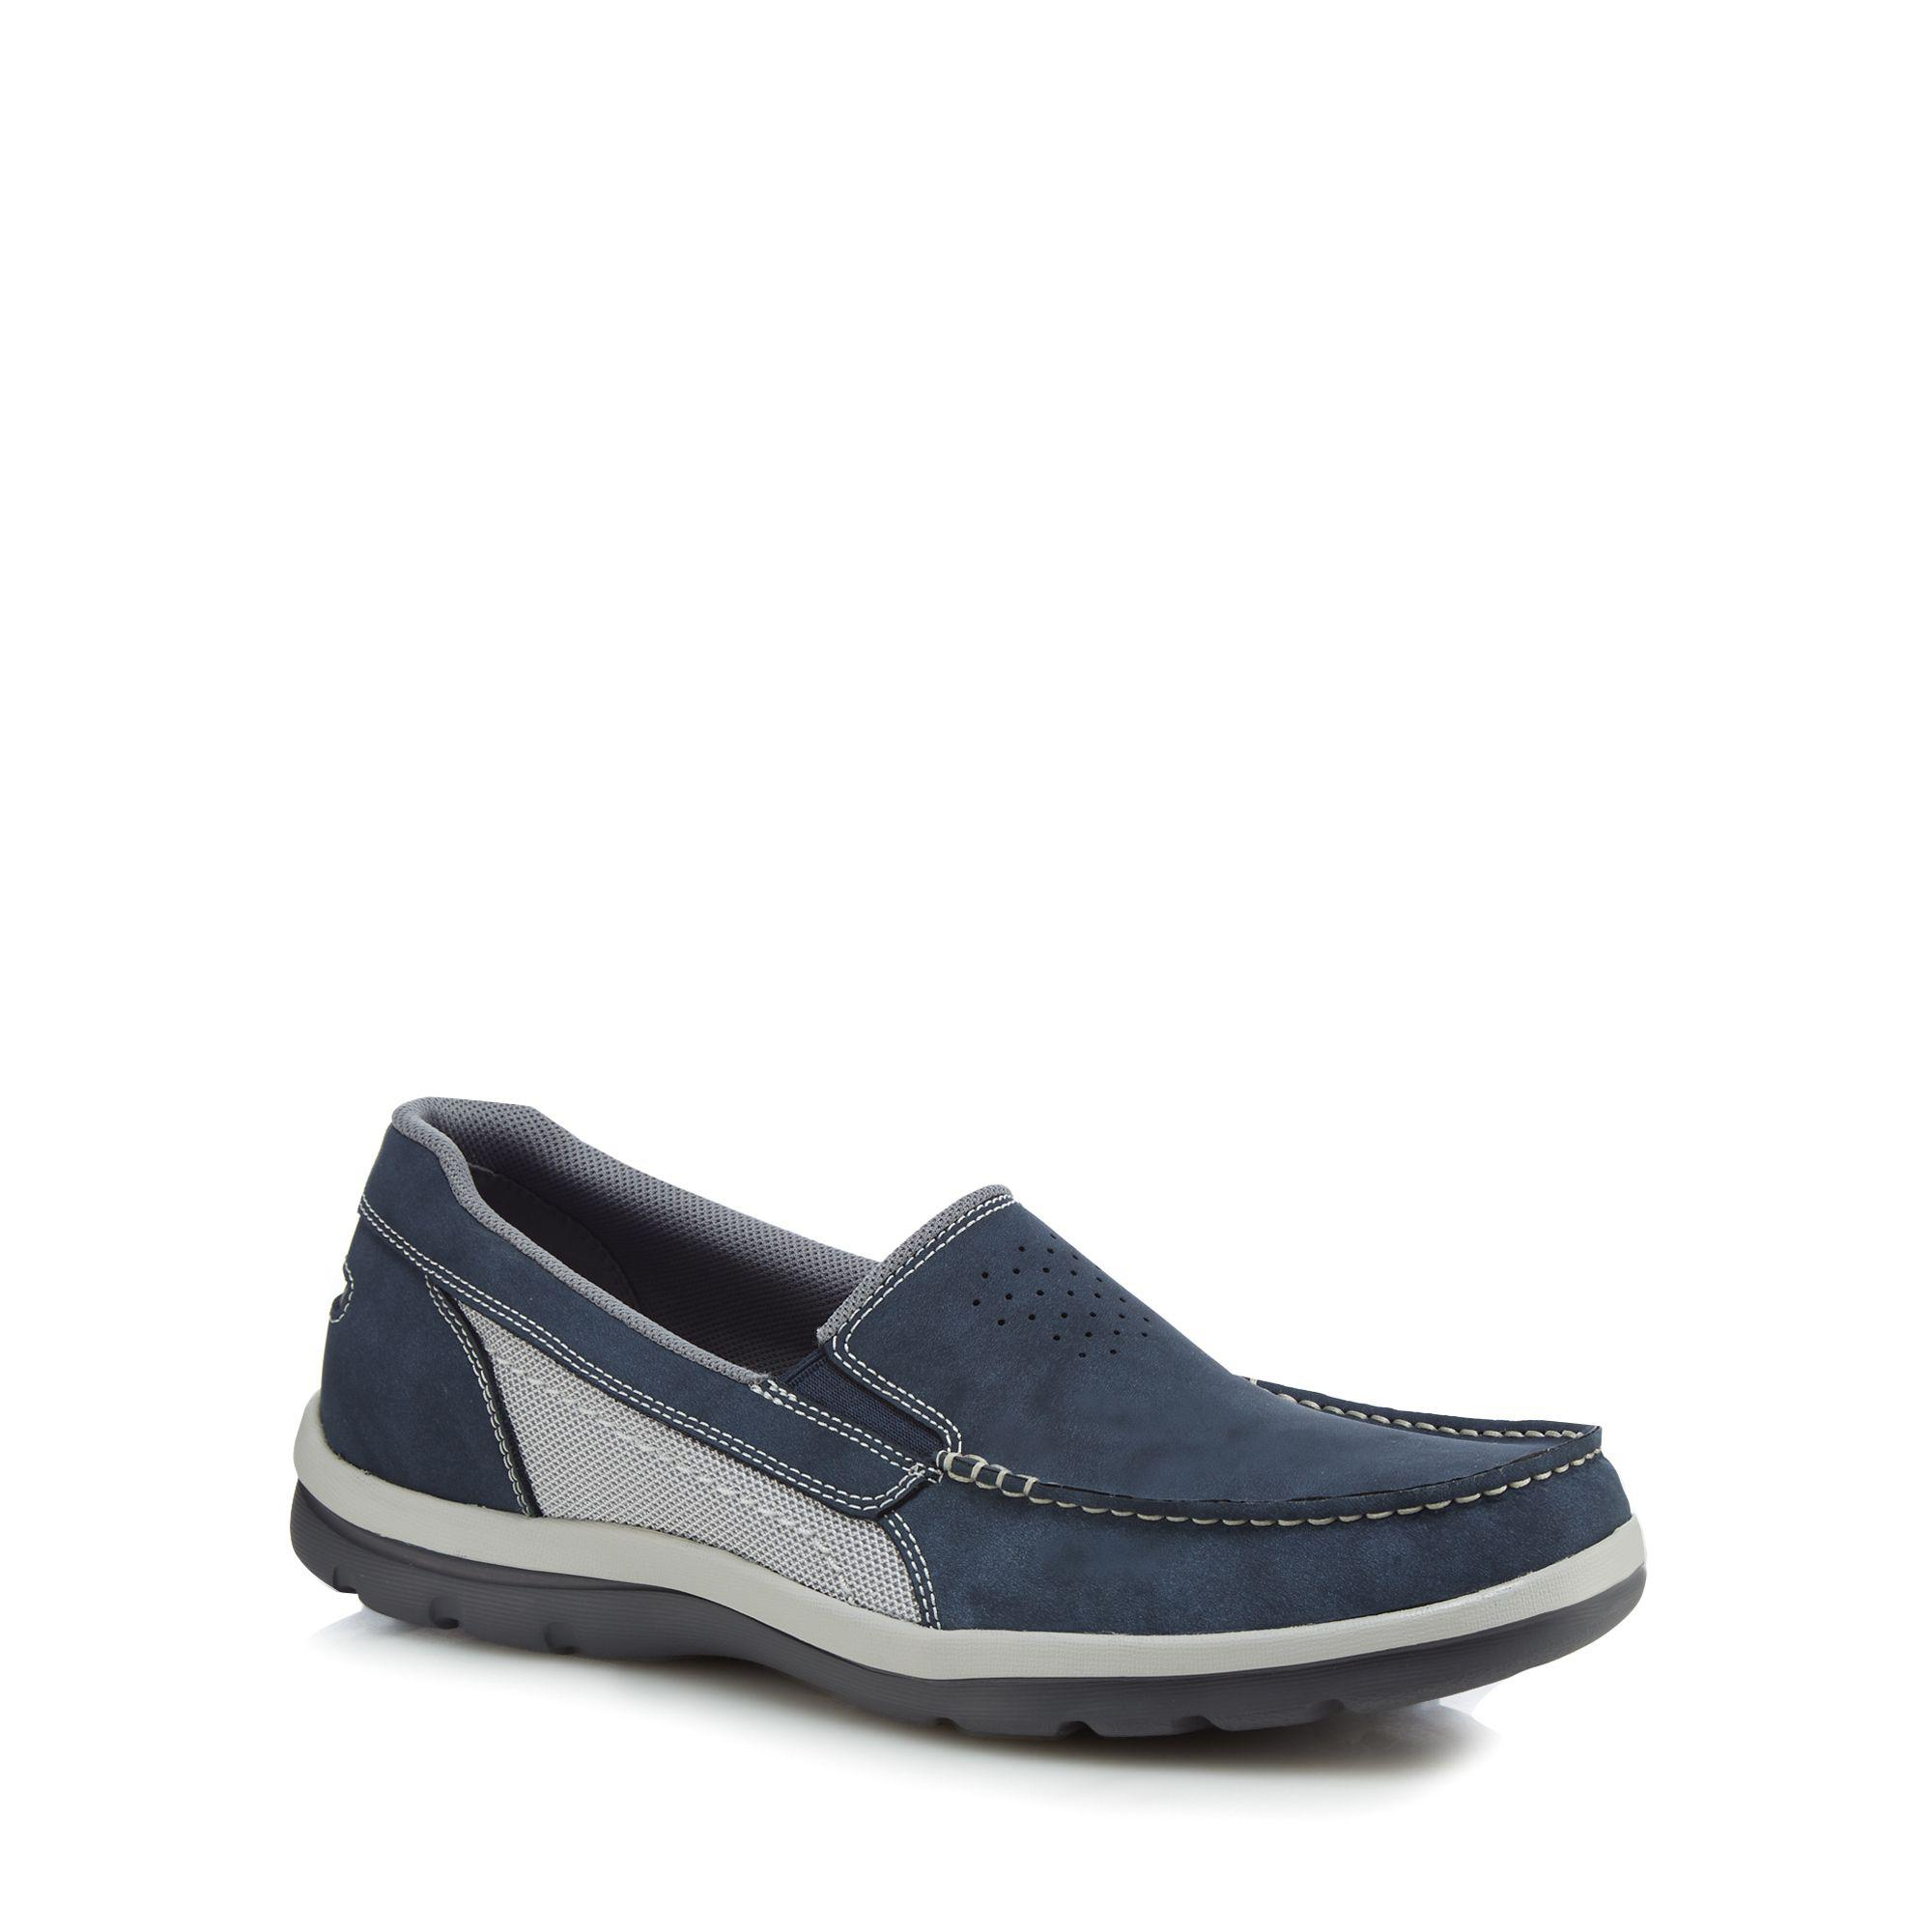 Dark blue suede 'Get Your Kicks' slip-on shoes footlocker pictures sale online free shipping really wholesale price cheap online free shipping ebay new cheap price TOLDKL8